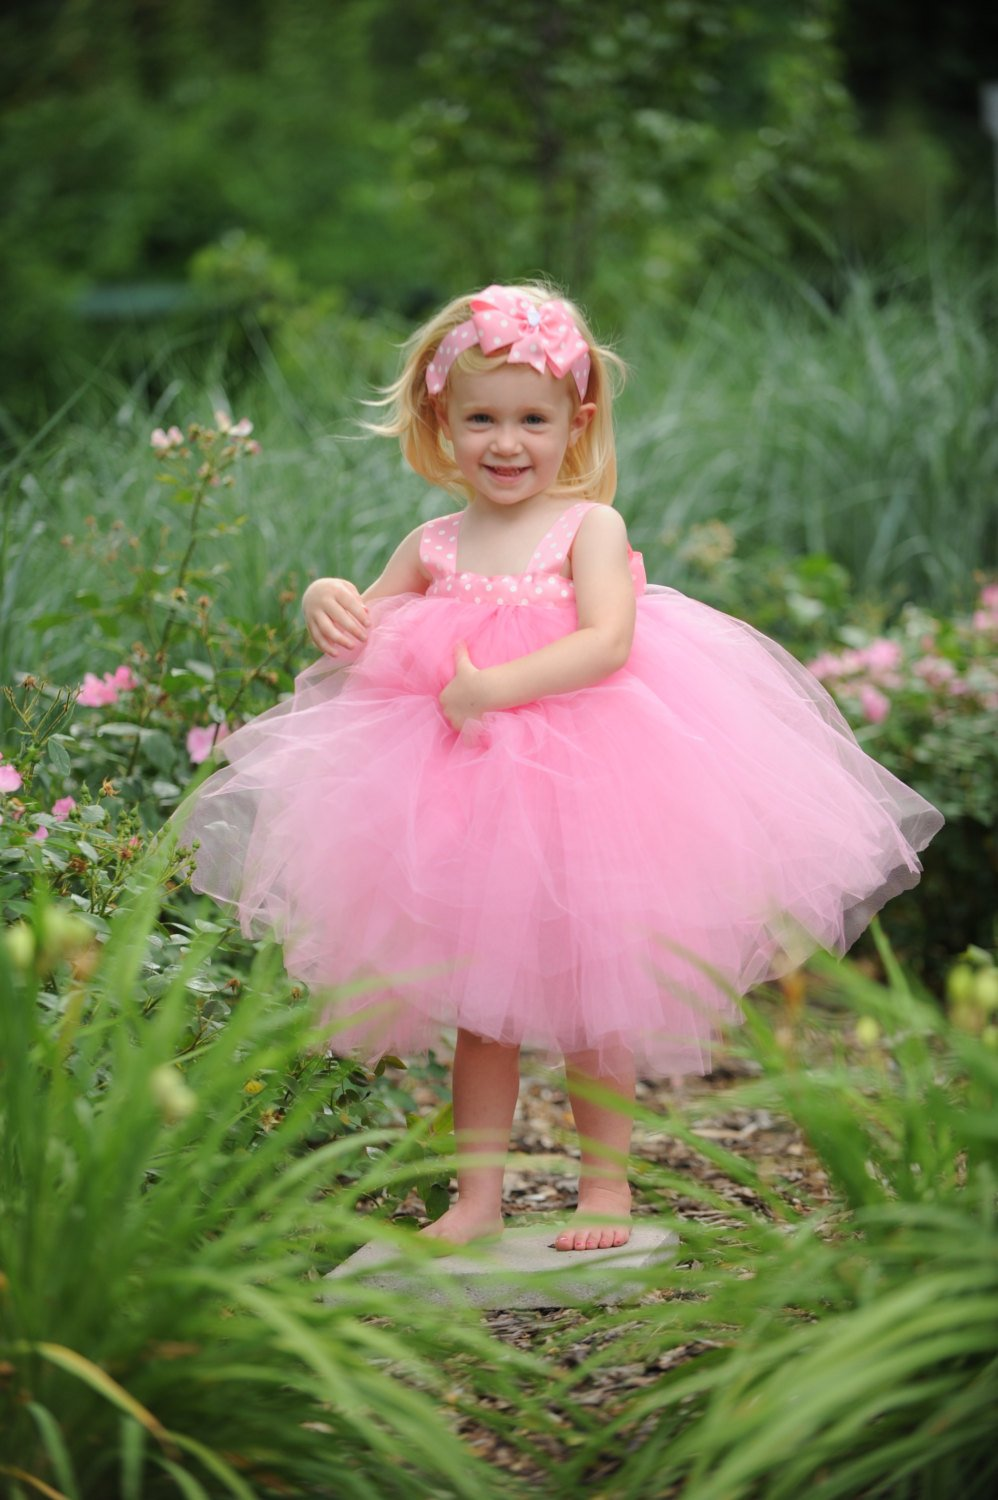 Pink Flowergirl Gown First Birthday Dress Tea Party Tutu Baby Baptism Gown Polka Dot Tulle Flower Girl Dress Kid 1st Bday Set Toddler Outfit